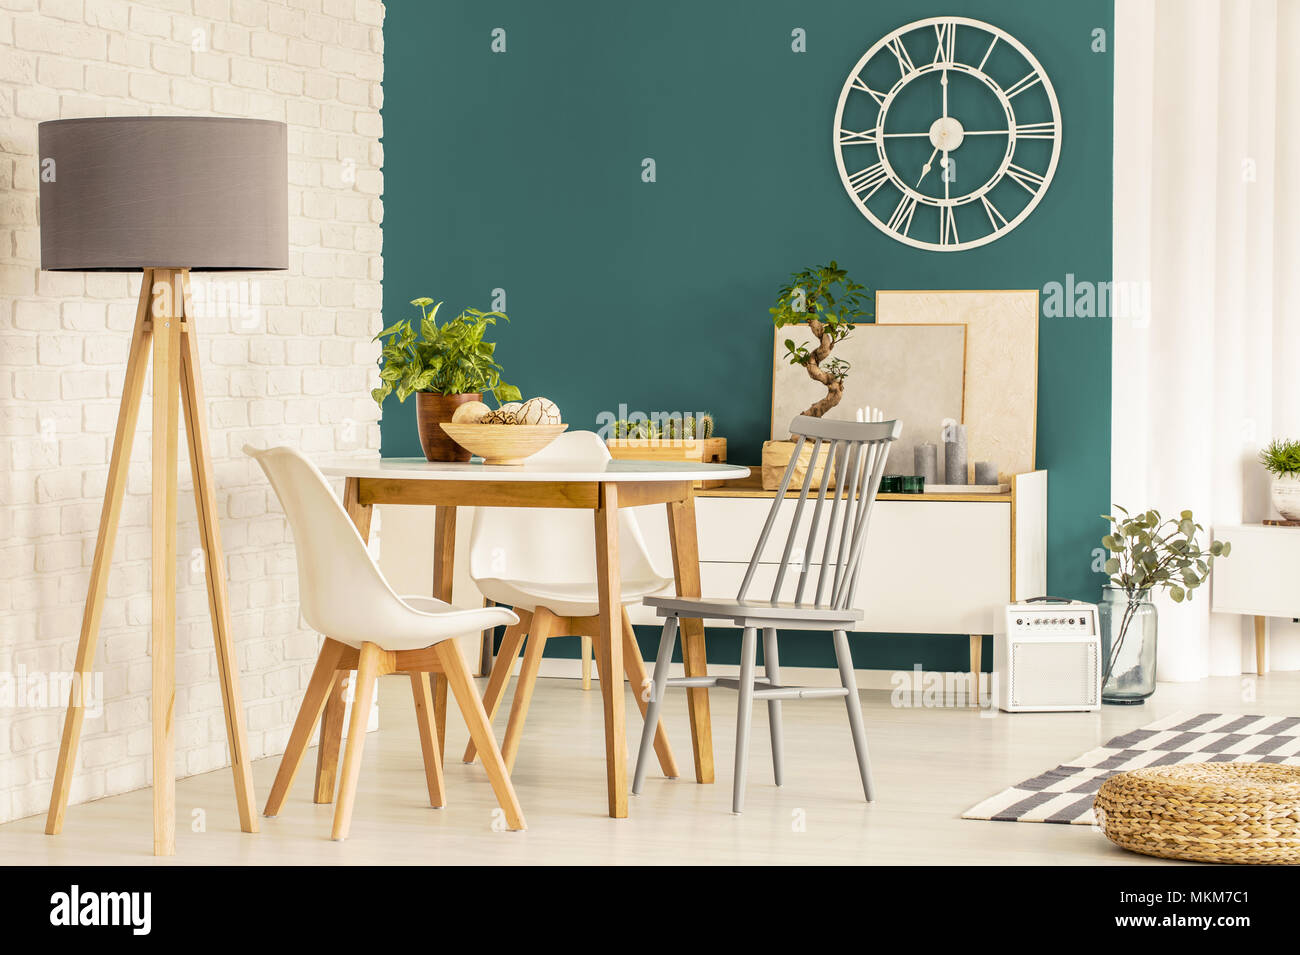 Grey lamp next to chairs at wooden table in green dining room interior with gold round clock - Stock Image